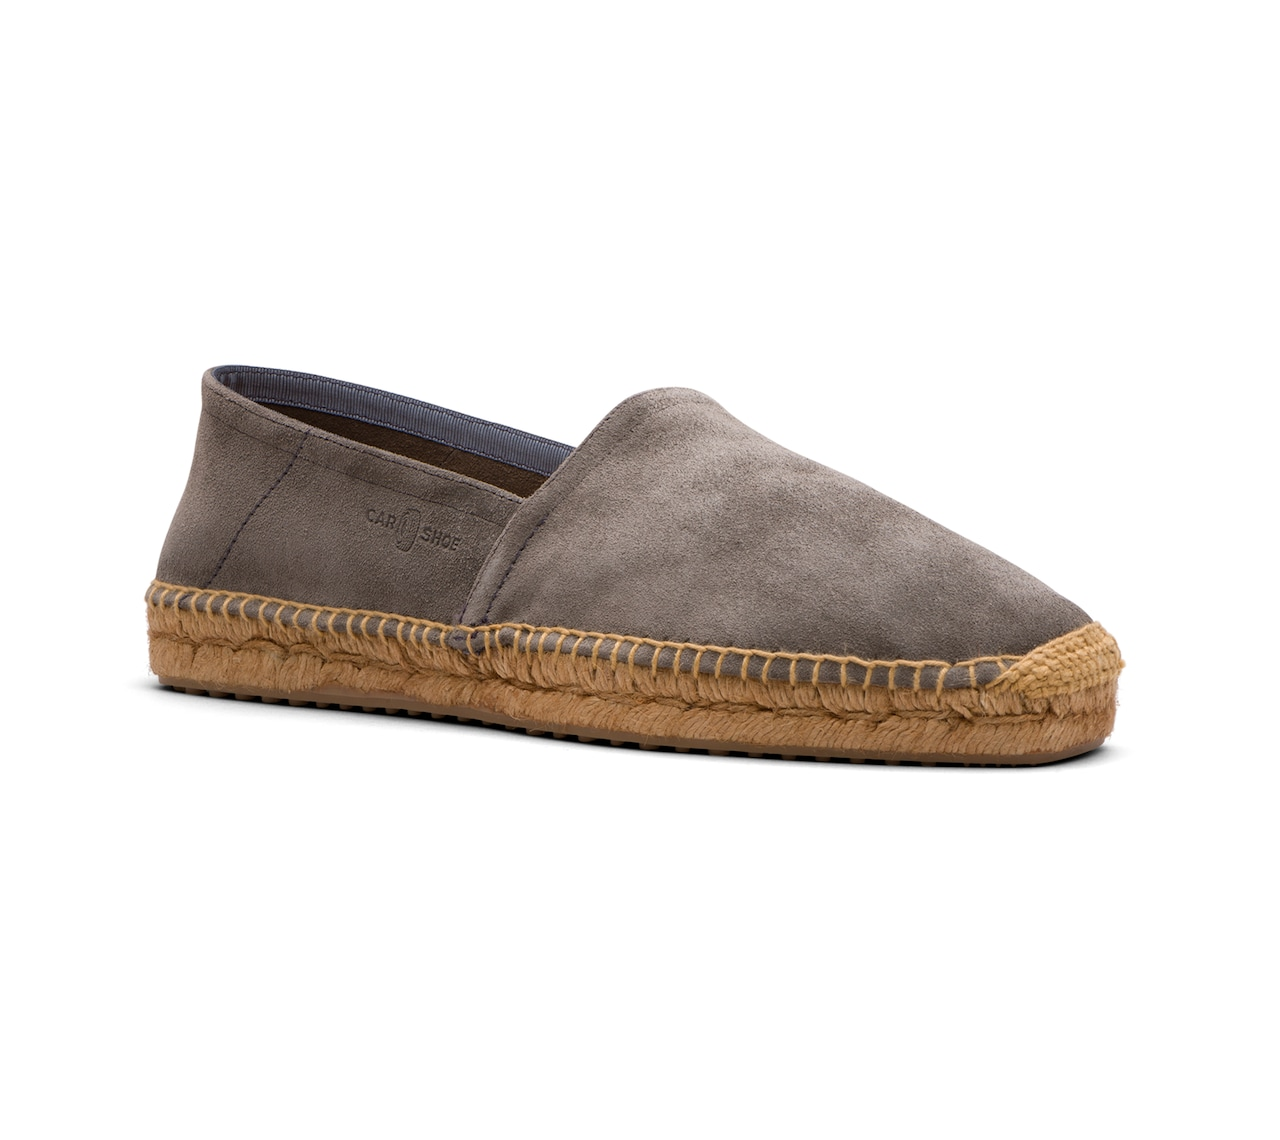 ESPADRILLAS IN UNLINED SUEDE GREY